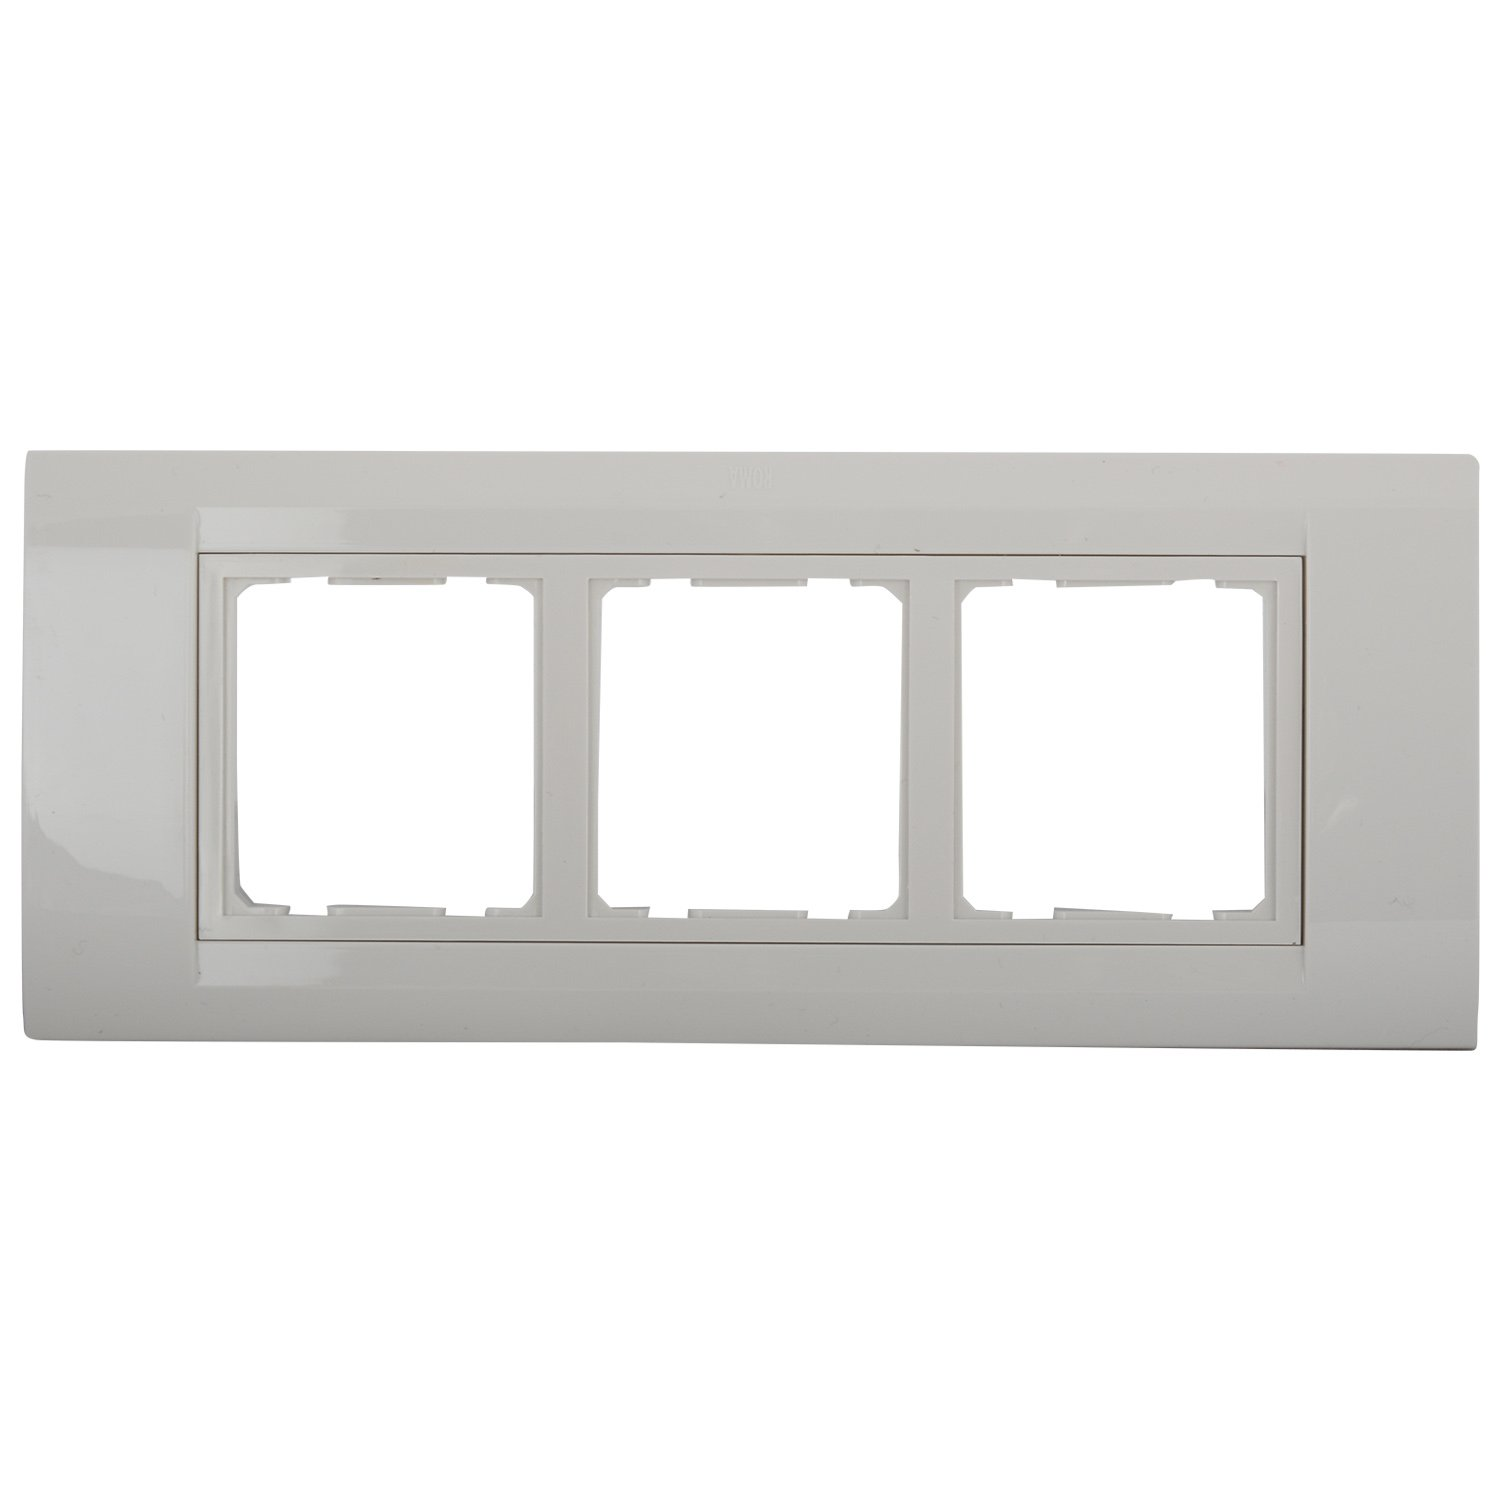 Wall Plates Online Buy In India Best Prices Wiring An Outlet Switch Combo Anchor Roma 6 Module Tresa Plate White